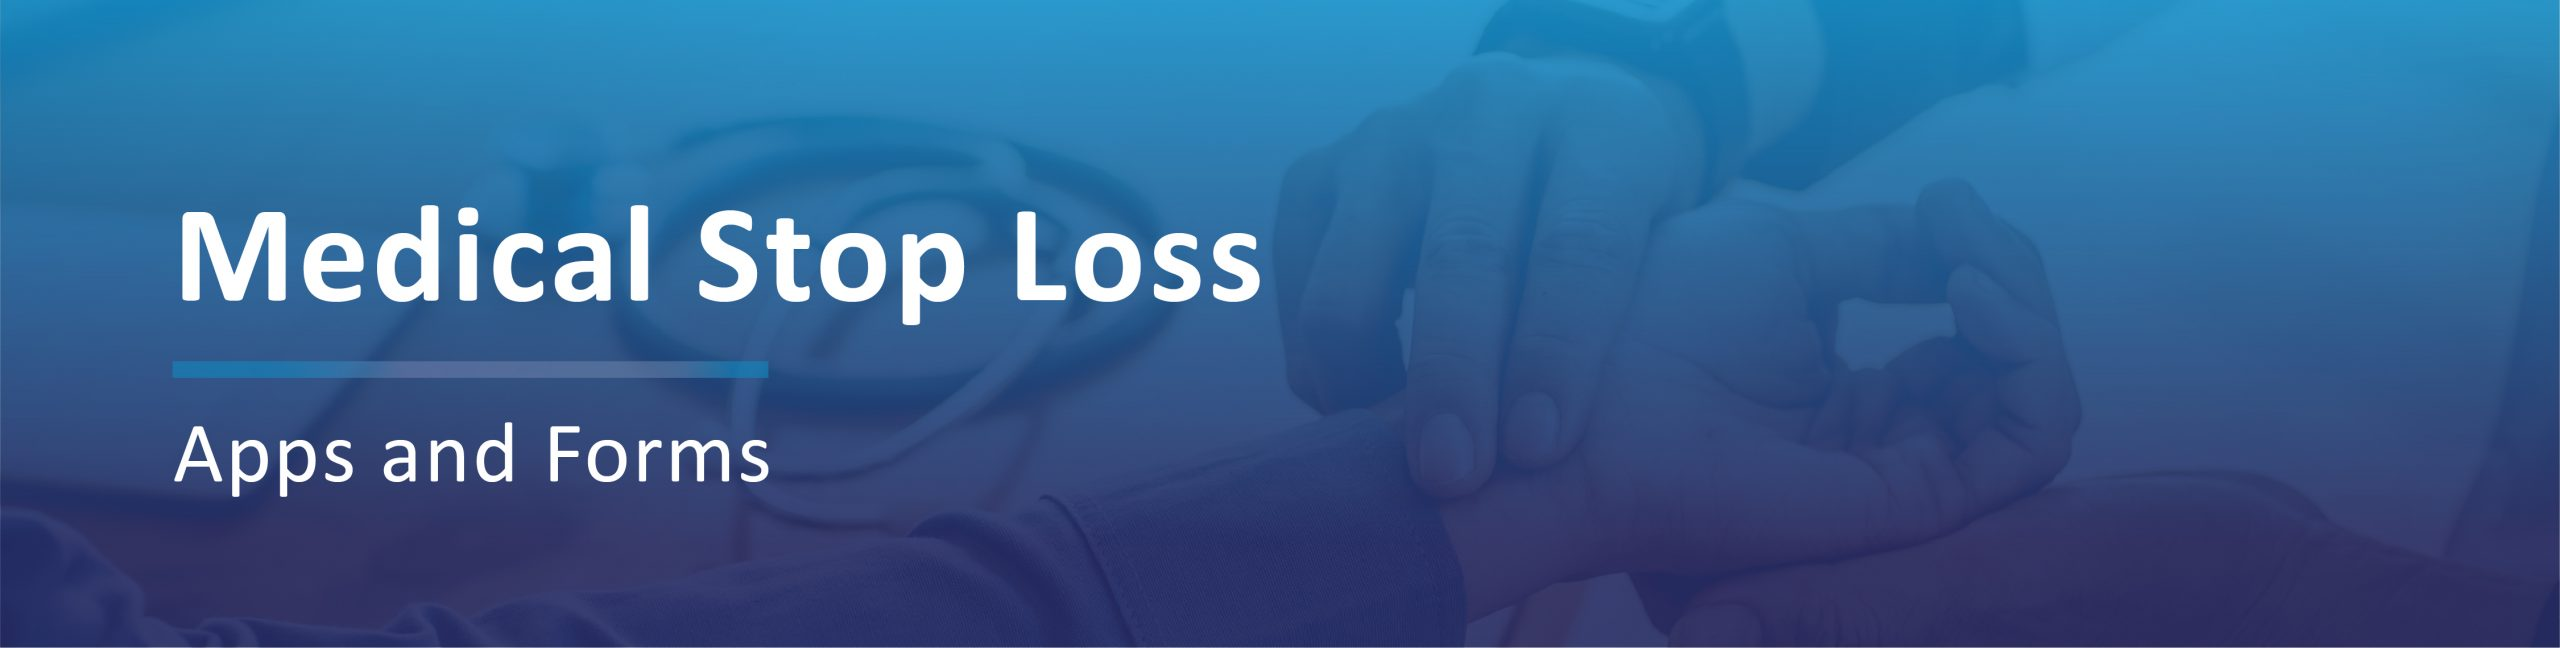 Medical Stop Loss Applications Banner